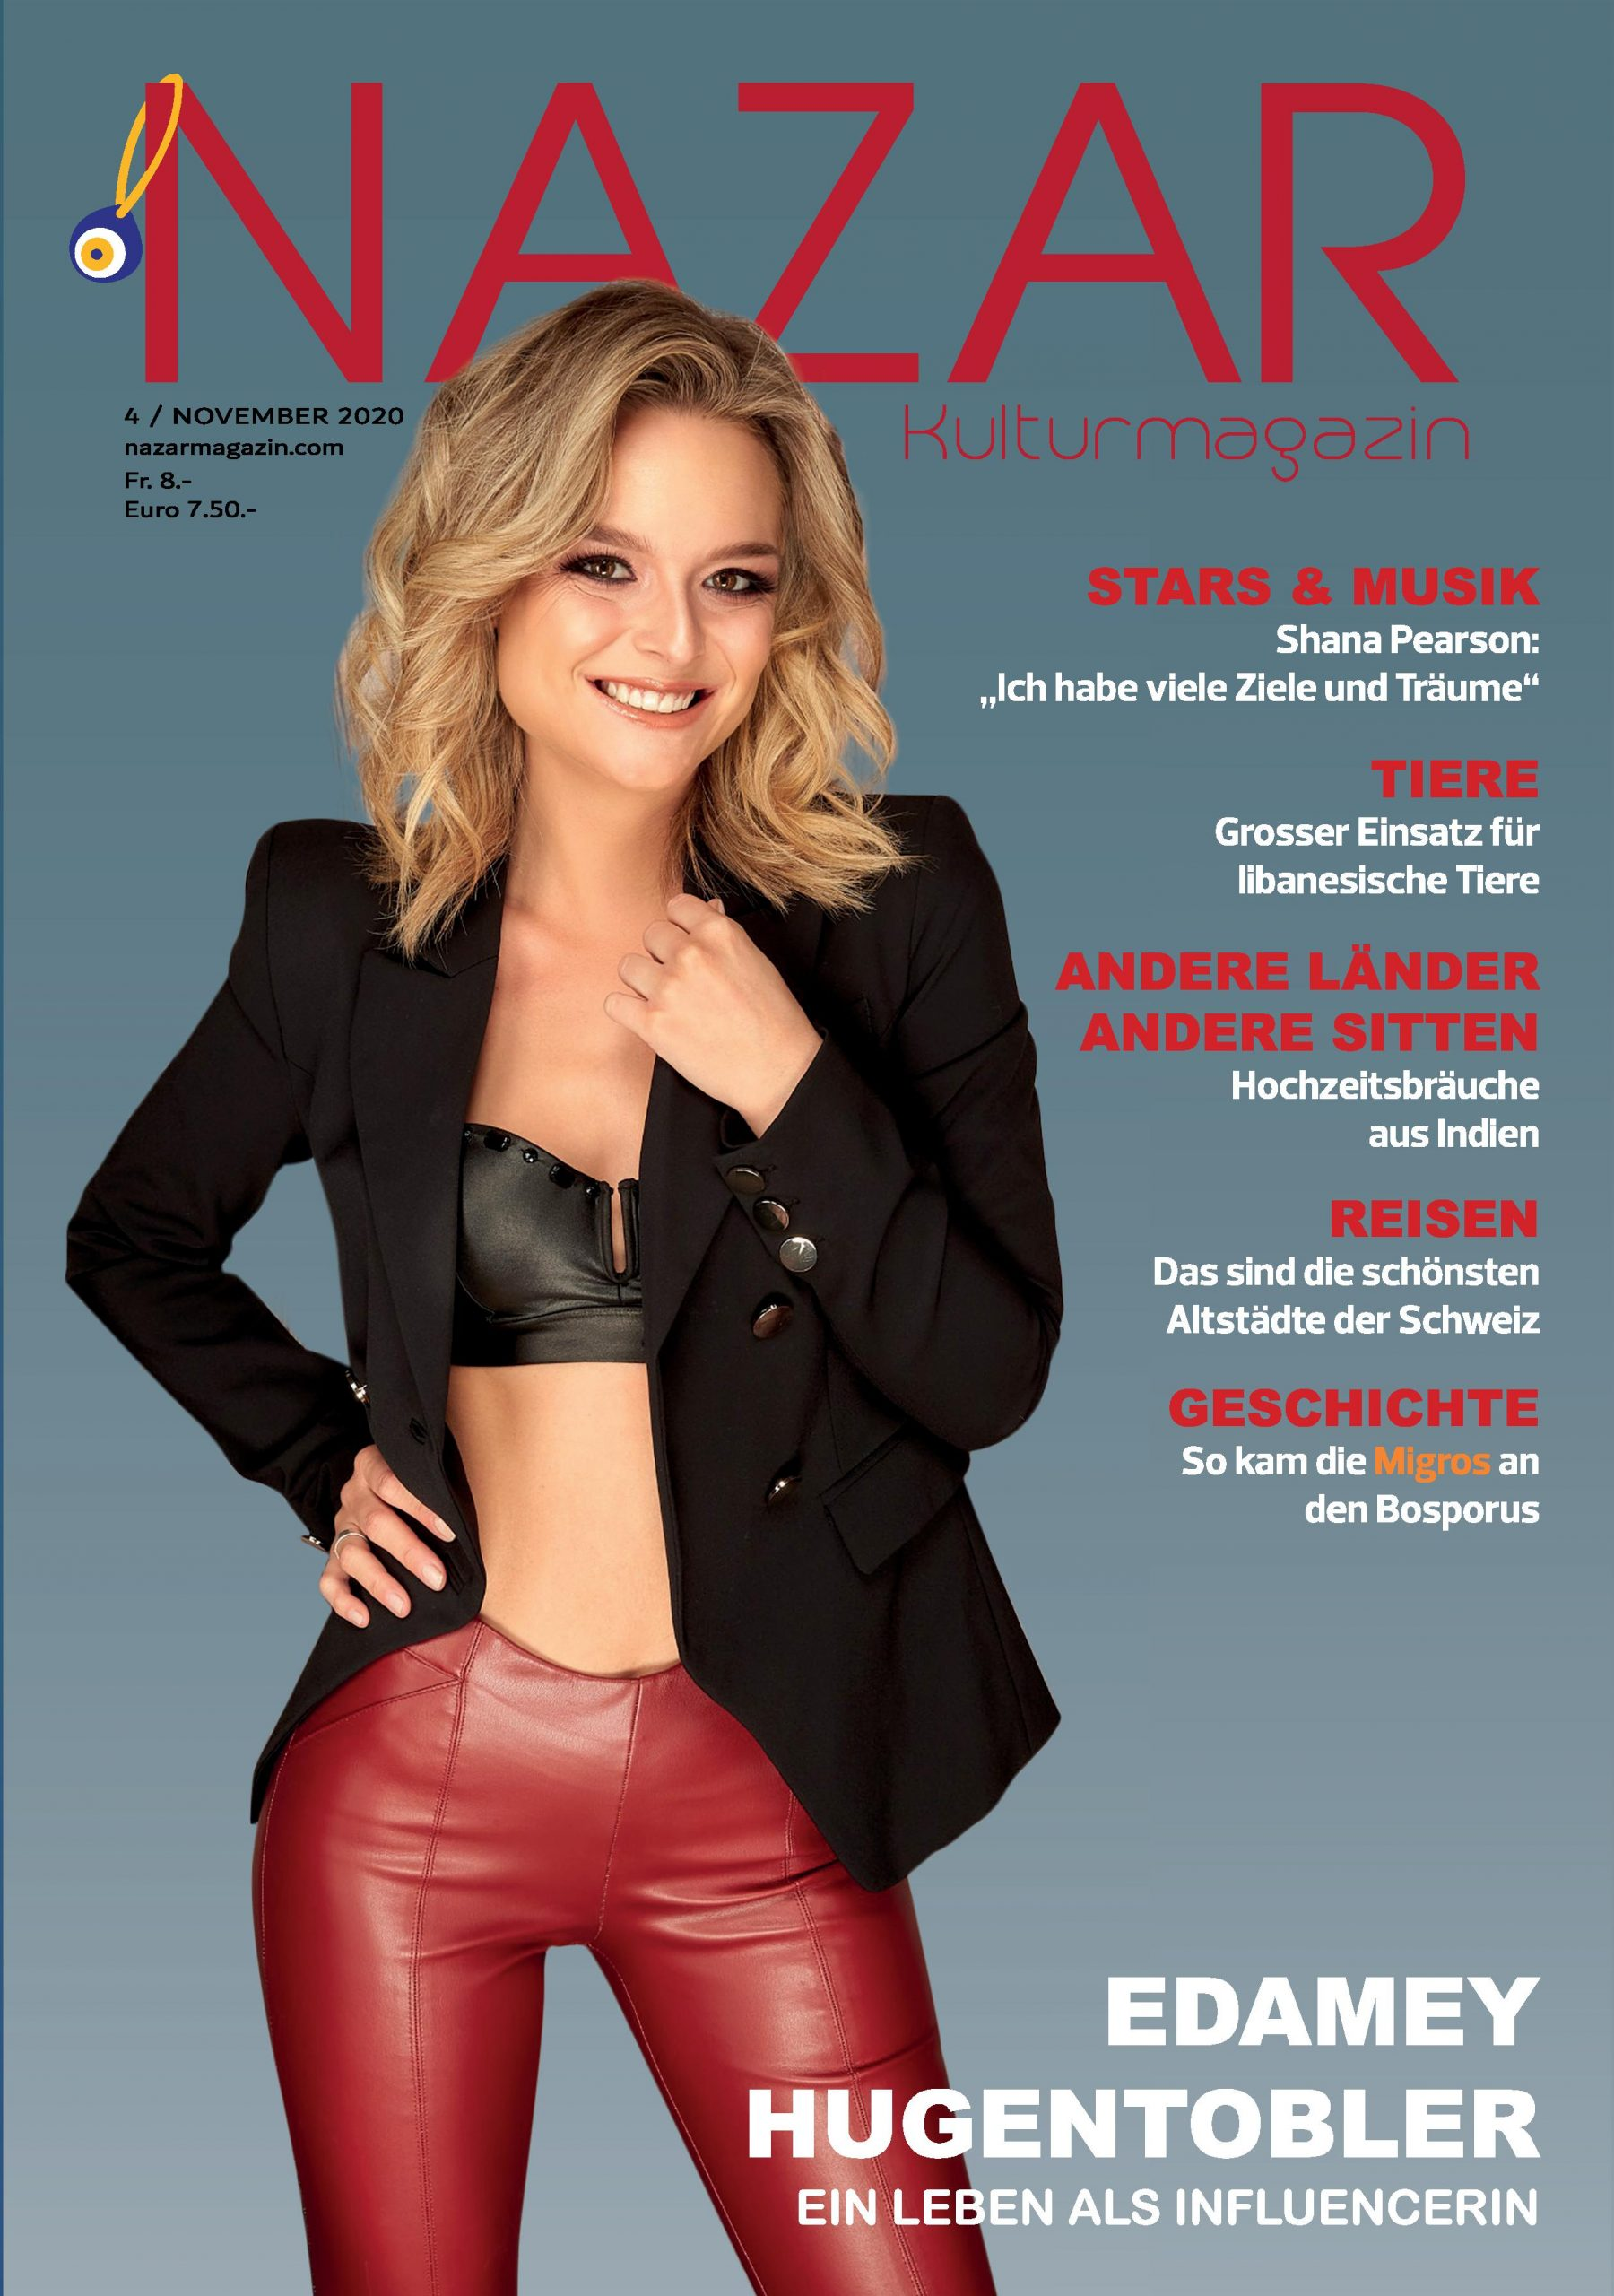 Nazar-Kultur-Magazin-November-2020